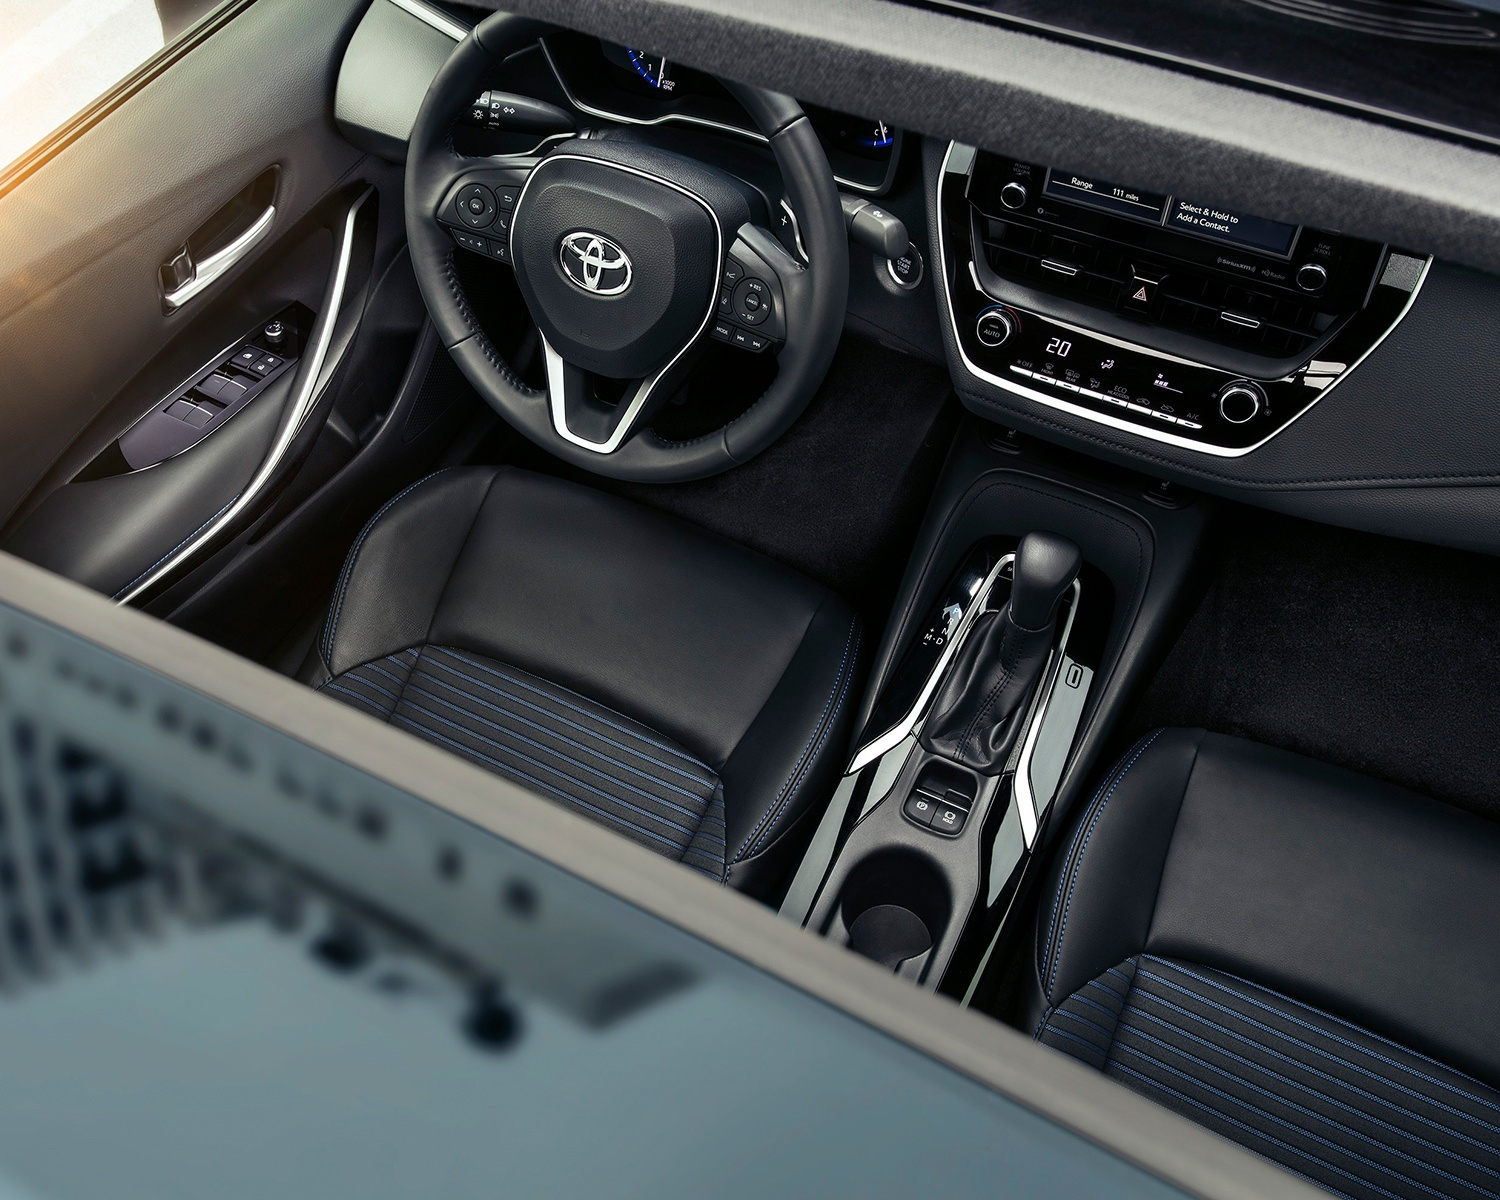 2020 Corolla Interior at Milton Toyota